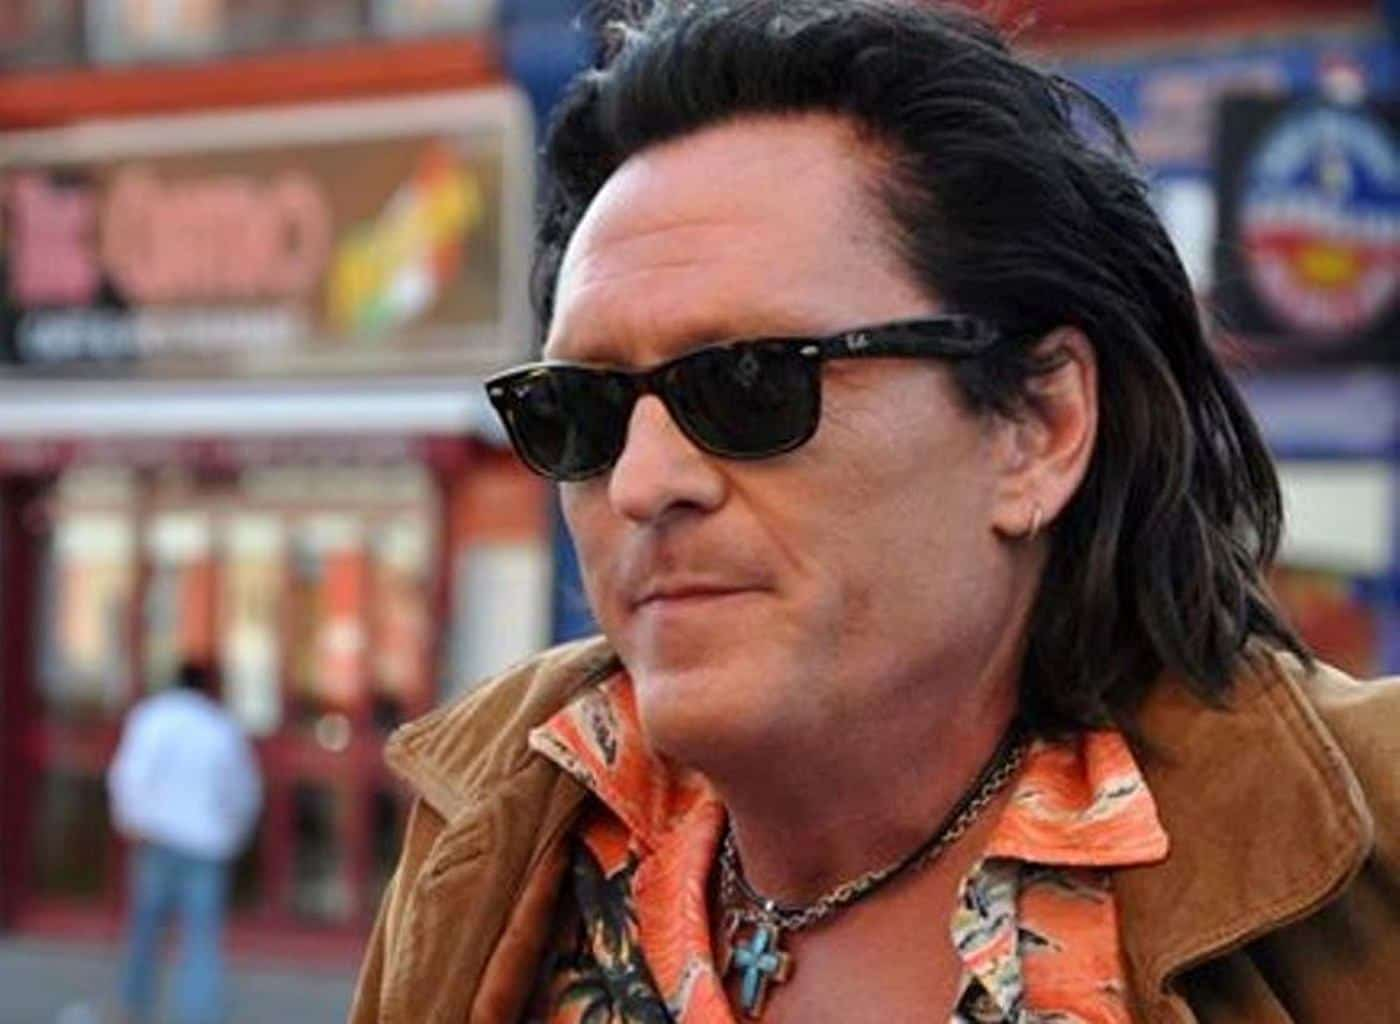 film reviews | movies | features | BRWC Michael Madsen To Attend Euro Prem Of The Ninth Cloud At RDFF